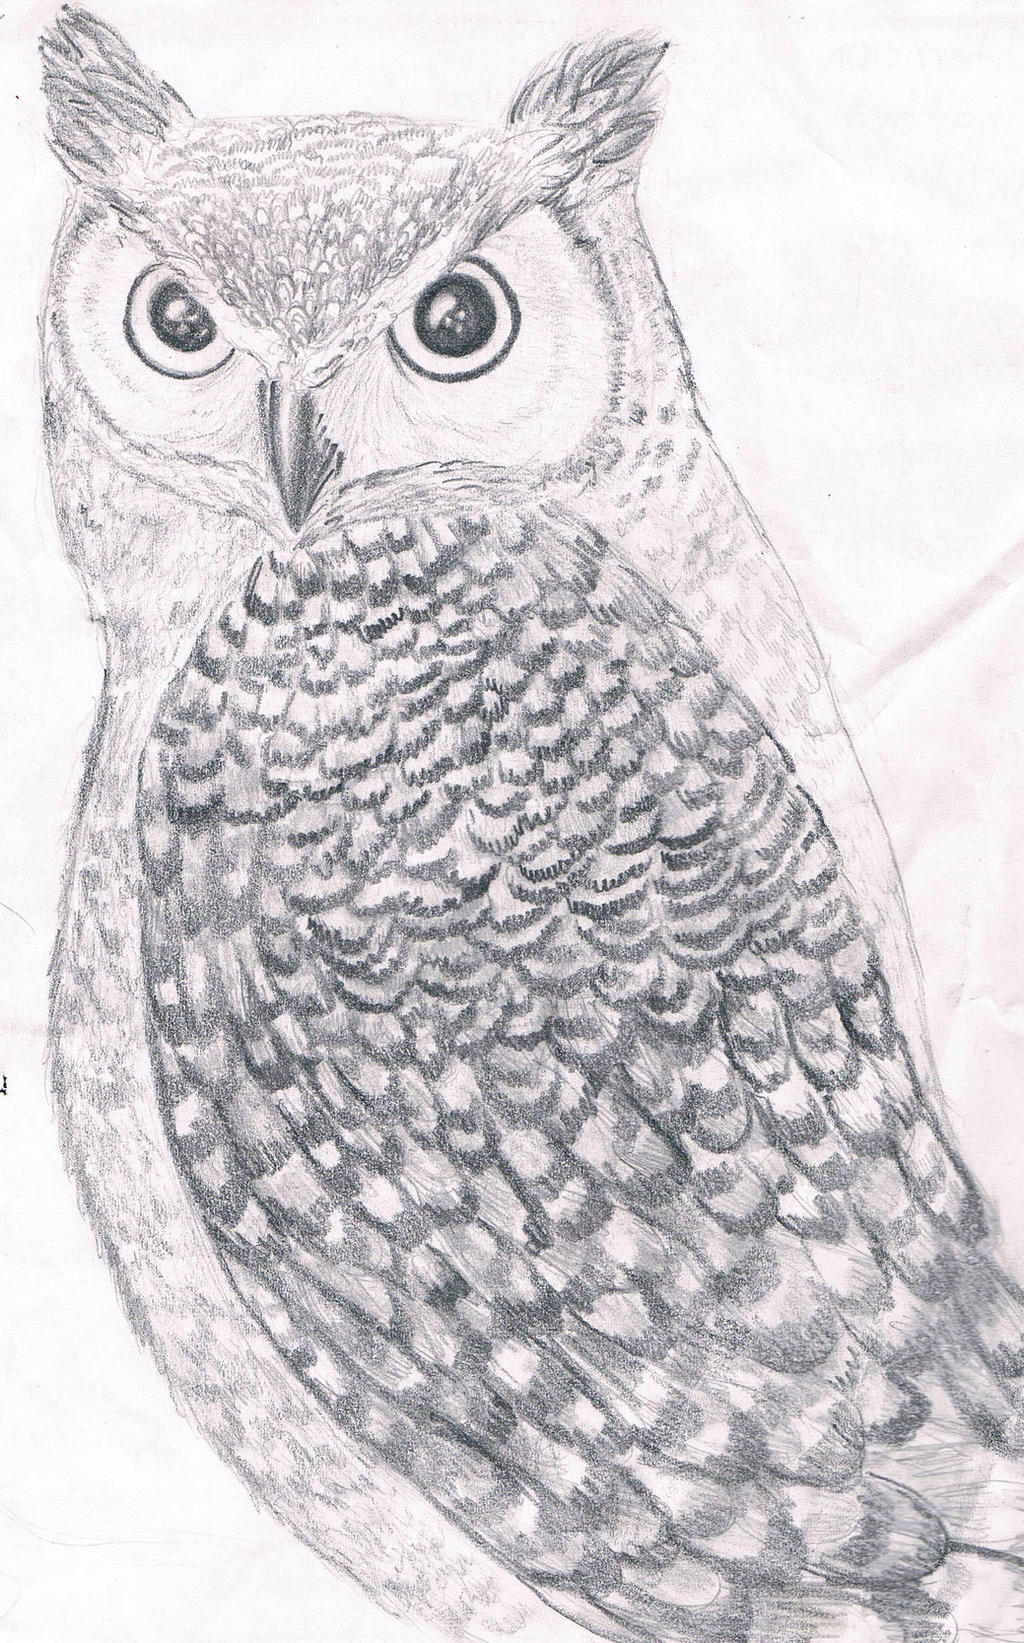 Horned Owl by Guadisaves02